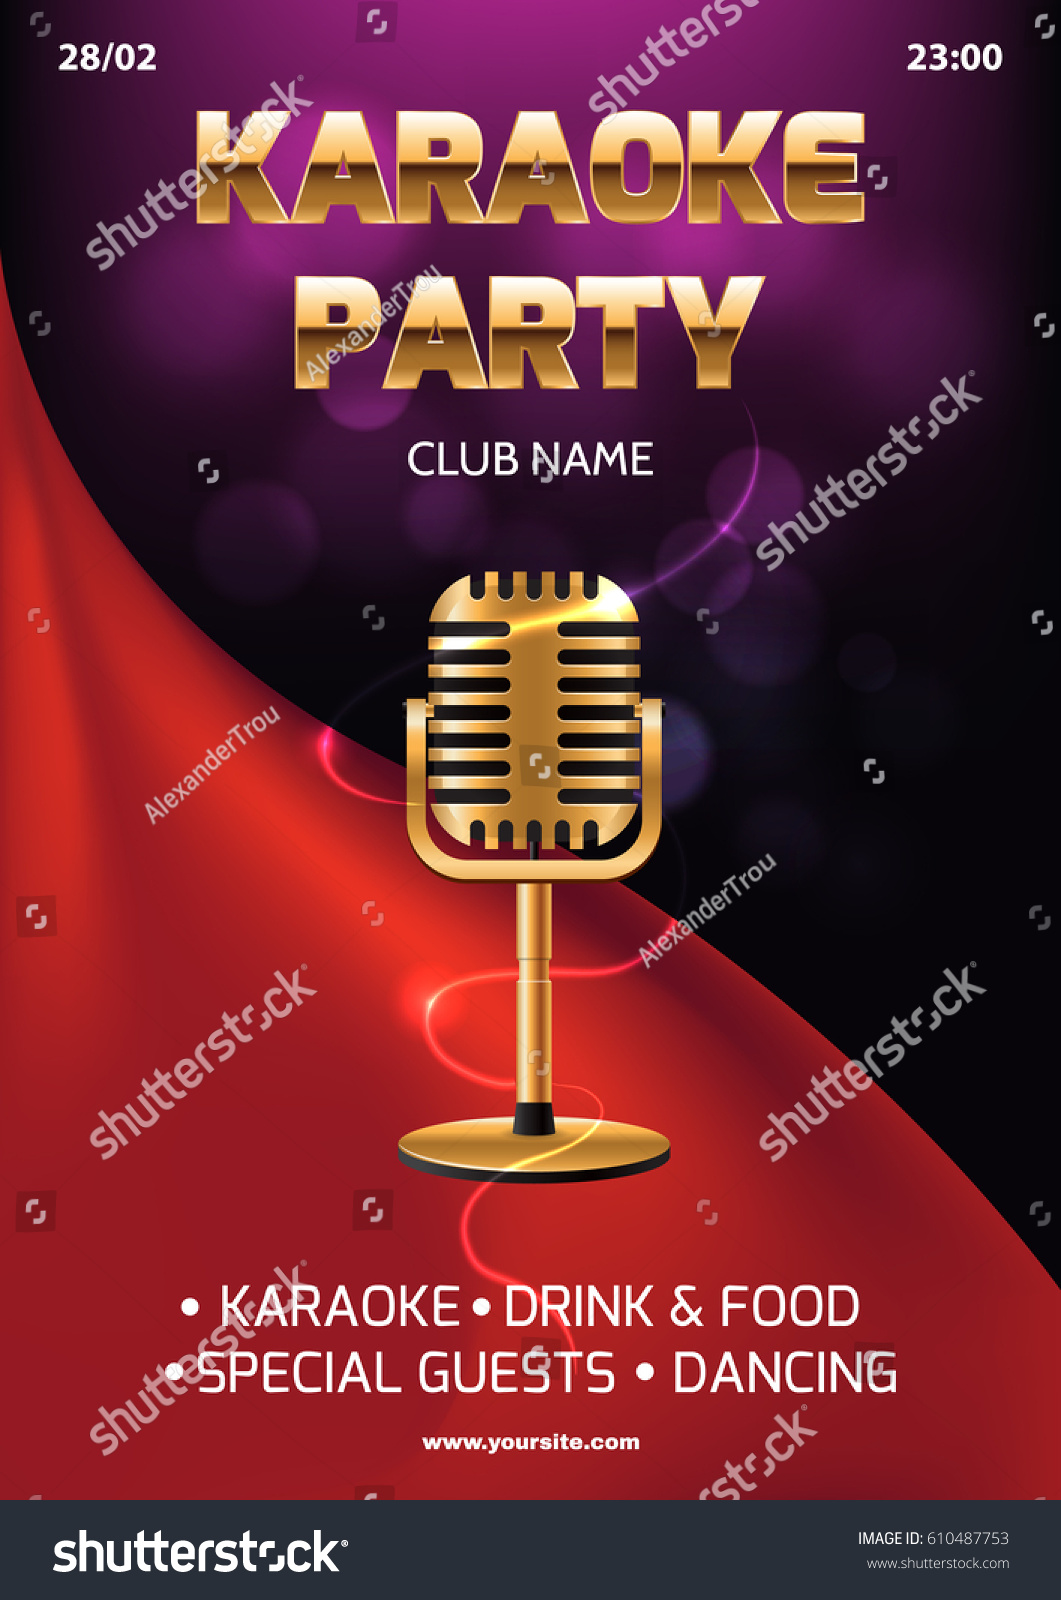 Karaoke Party Invitation Flyer Template Red Stock Vector 610487753 ...